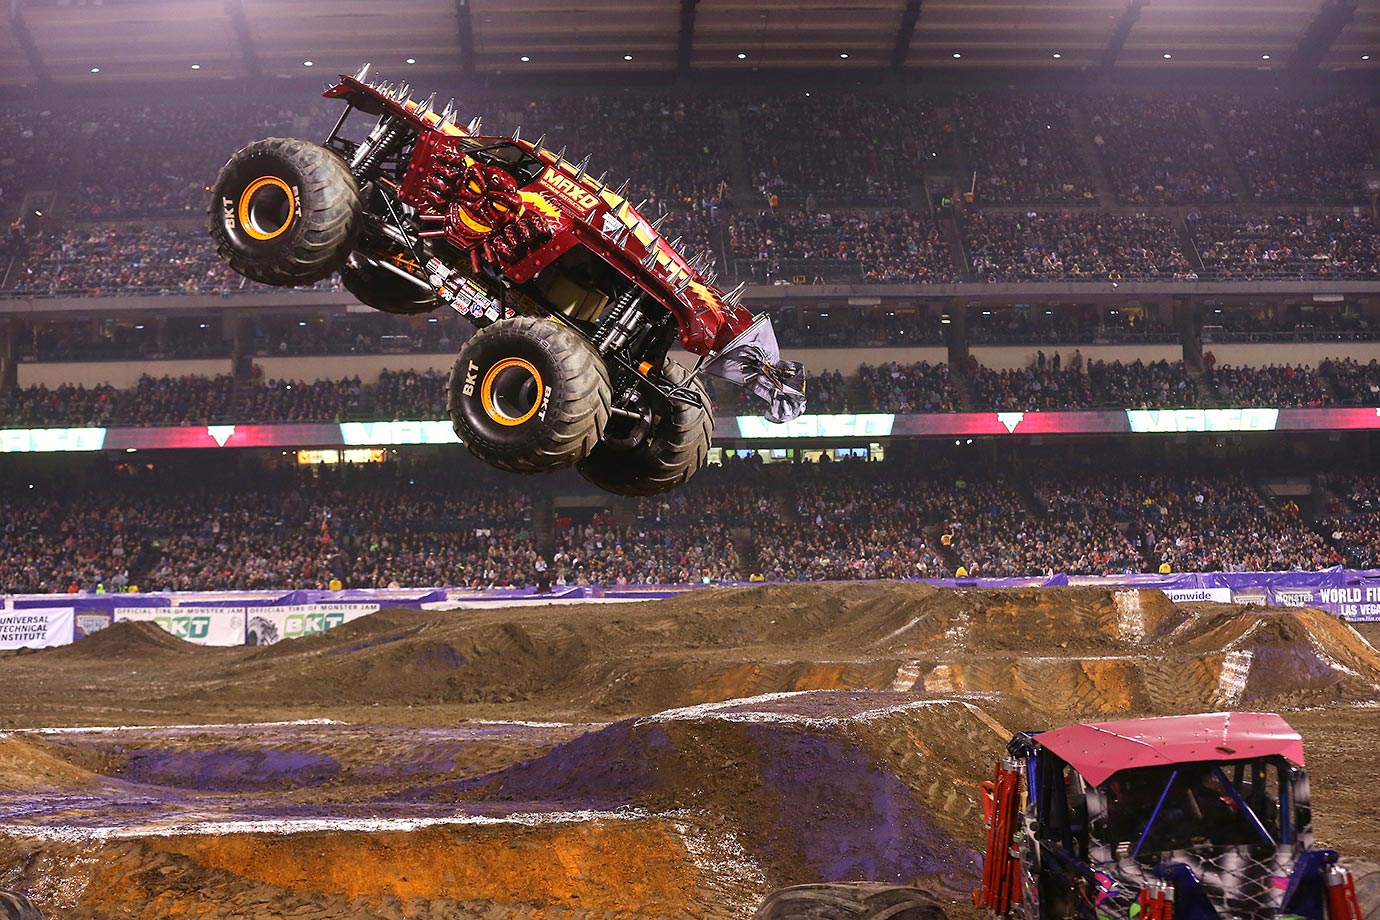 Monster Jam's 'Max-D' won both competitions at Monster Jam in Anaheim.